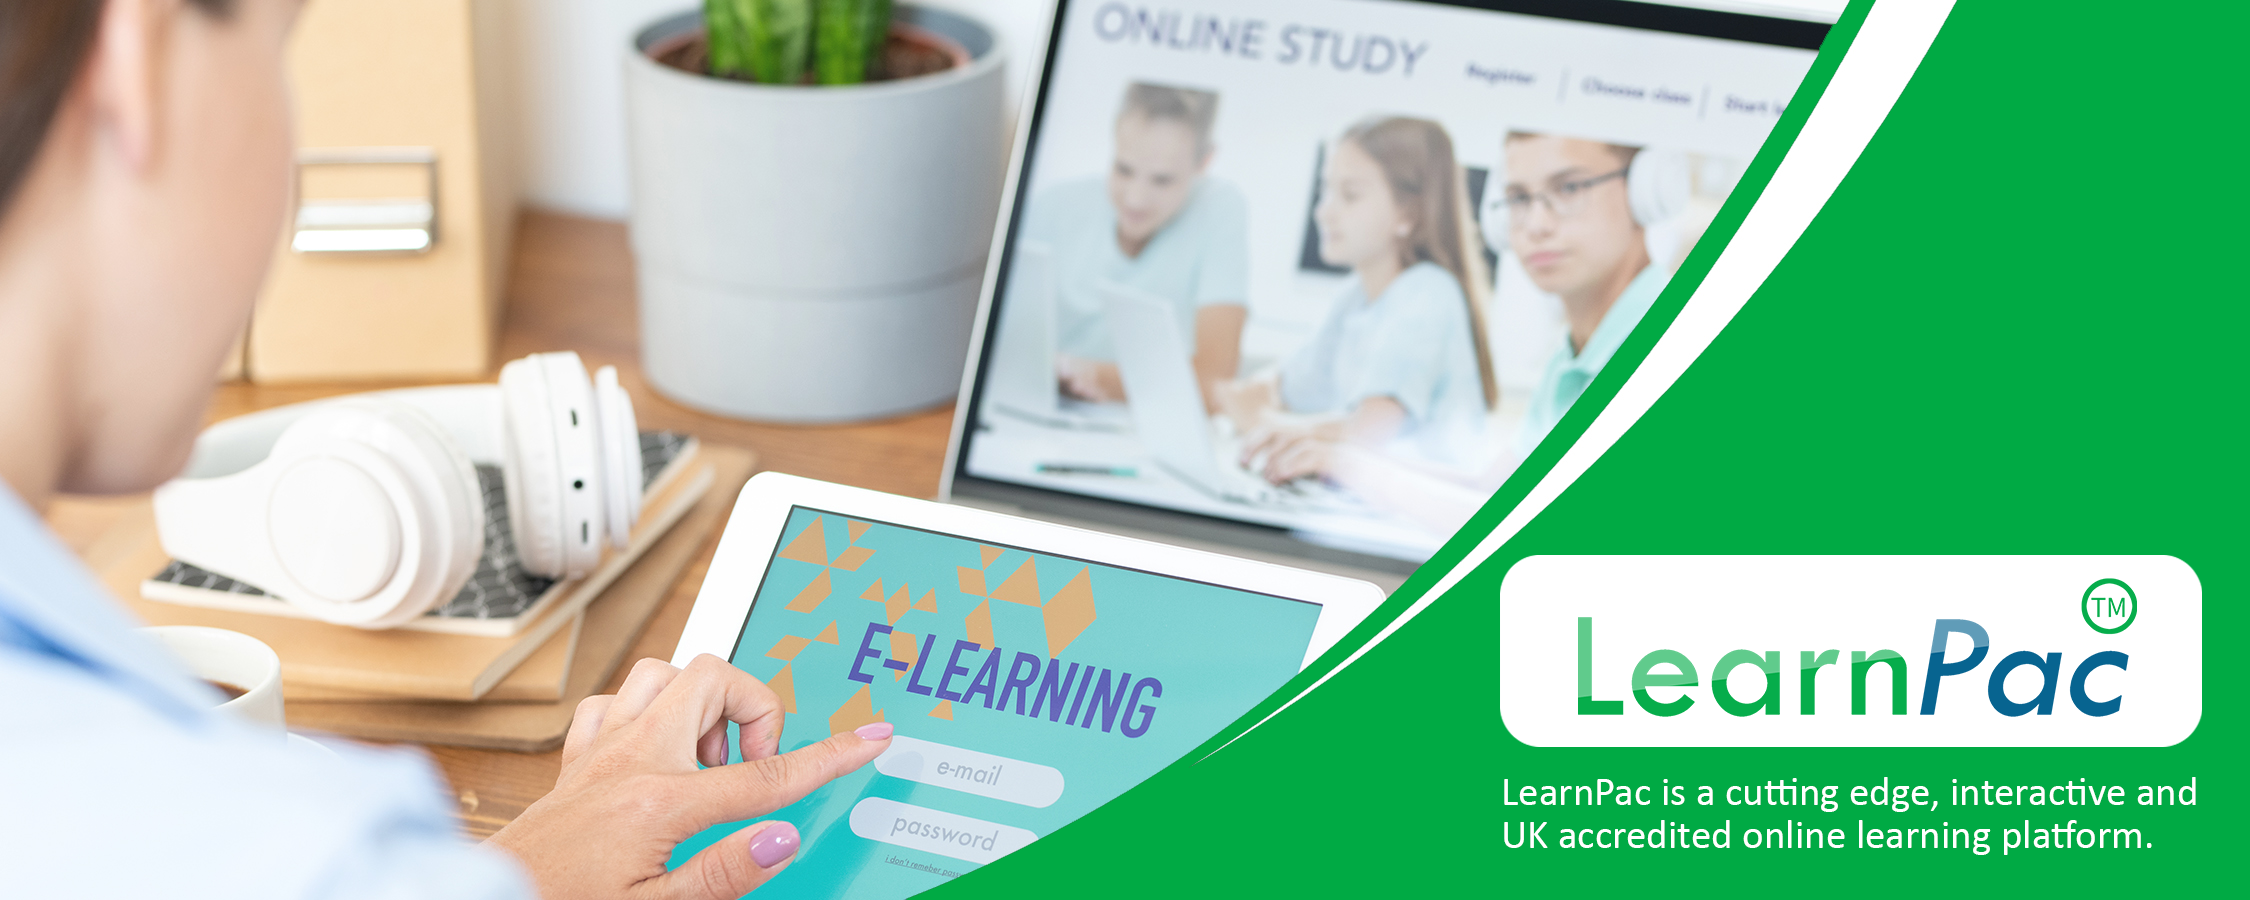 Mental Health, Dementia and Learning Disabilities - Online Learning Courses - E-Learning Courses - LearnPac Systems UK -